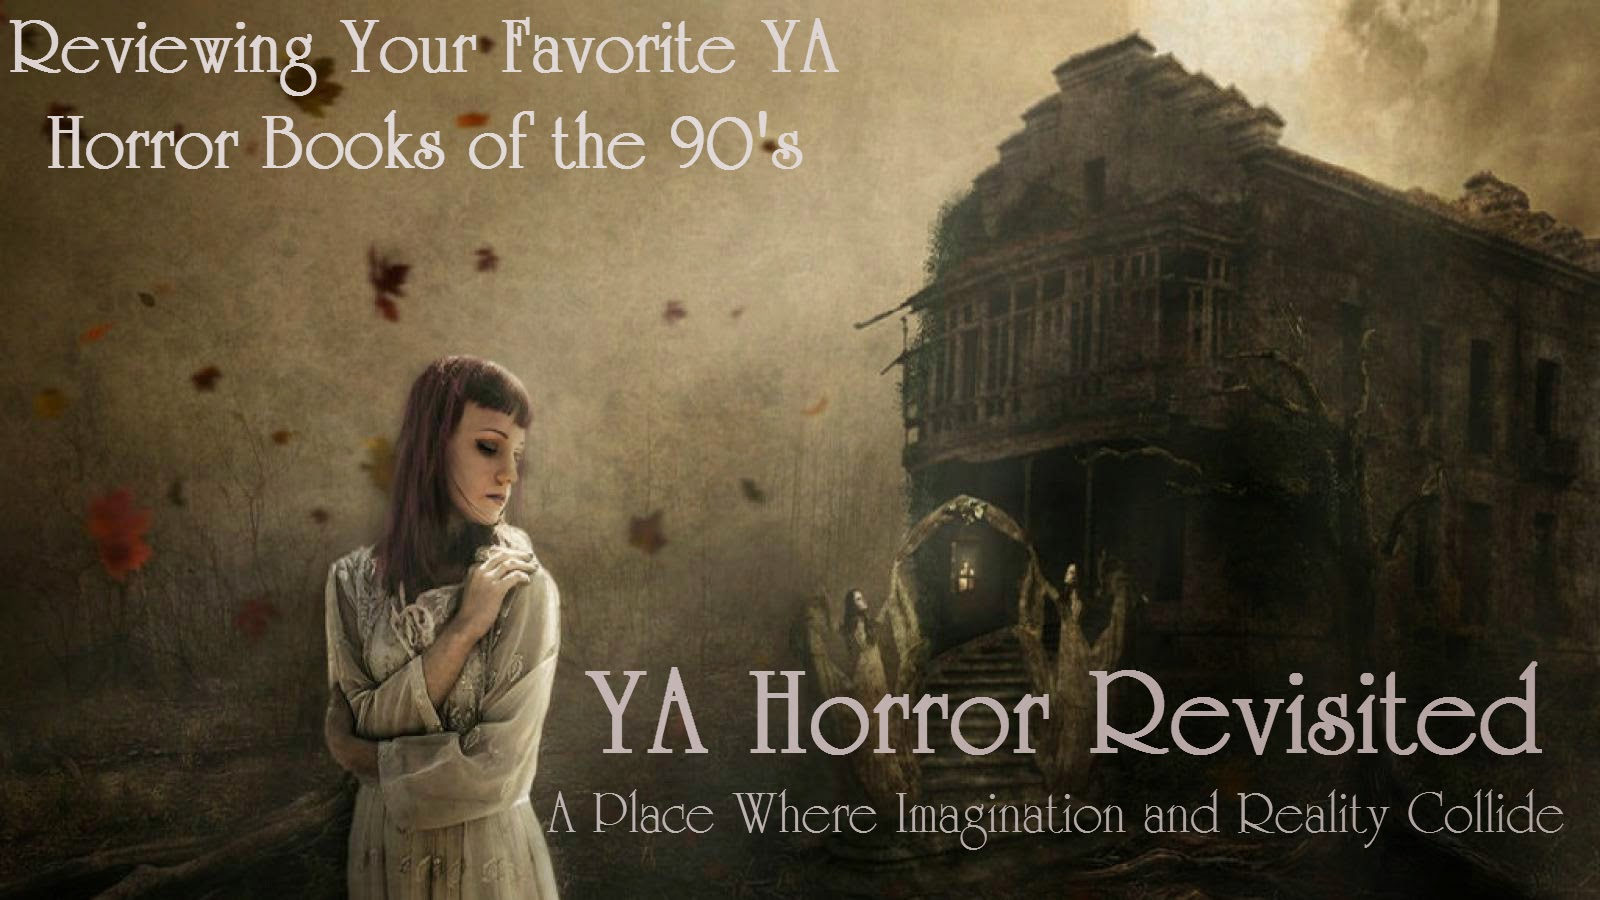 YA Horror Revisited